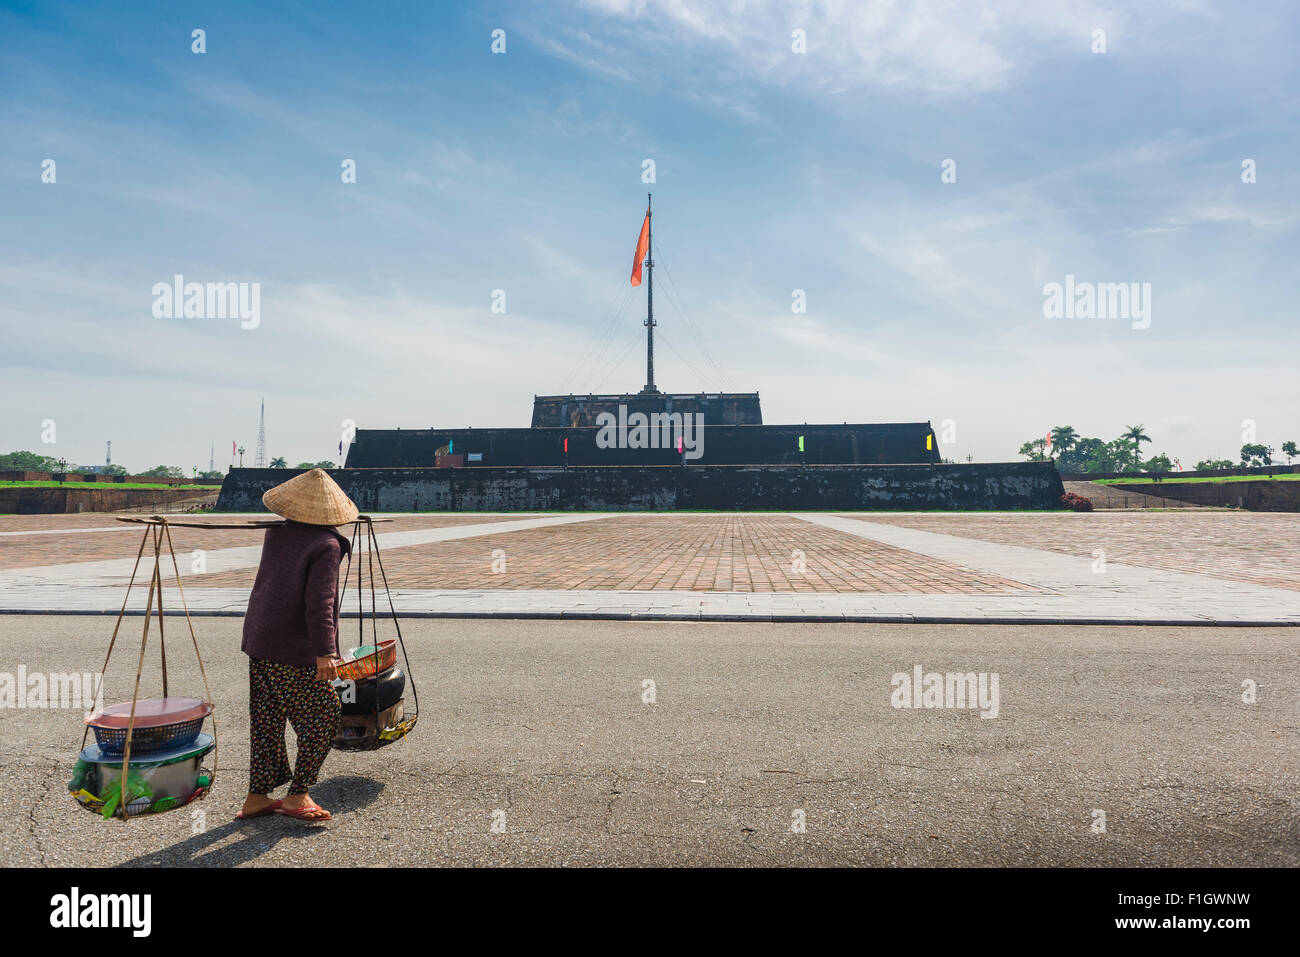 Hue Vietnam flag tower, a vendor carries her wares past the flag tower (Cot Co) near the Imperial Citadel in Hue, - Stock Image